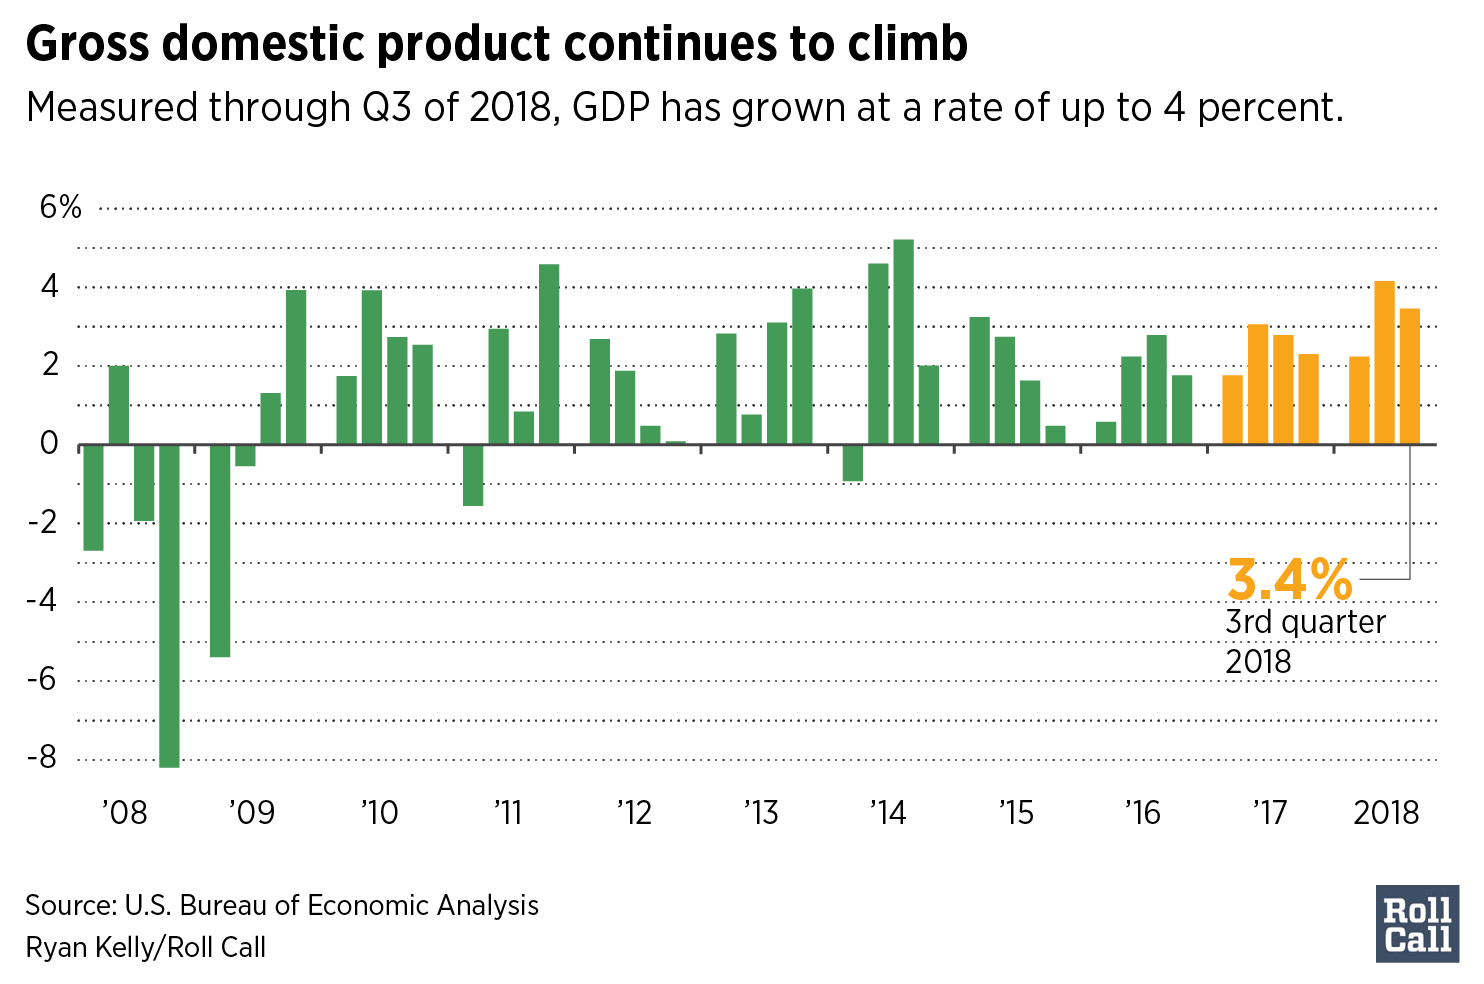 Gross domestic product continues to climb